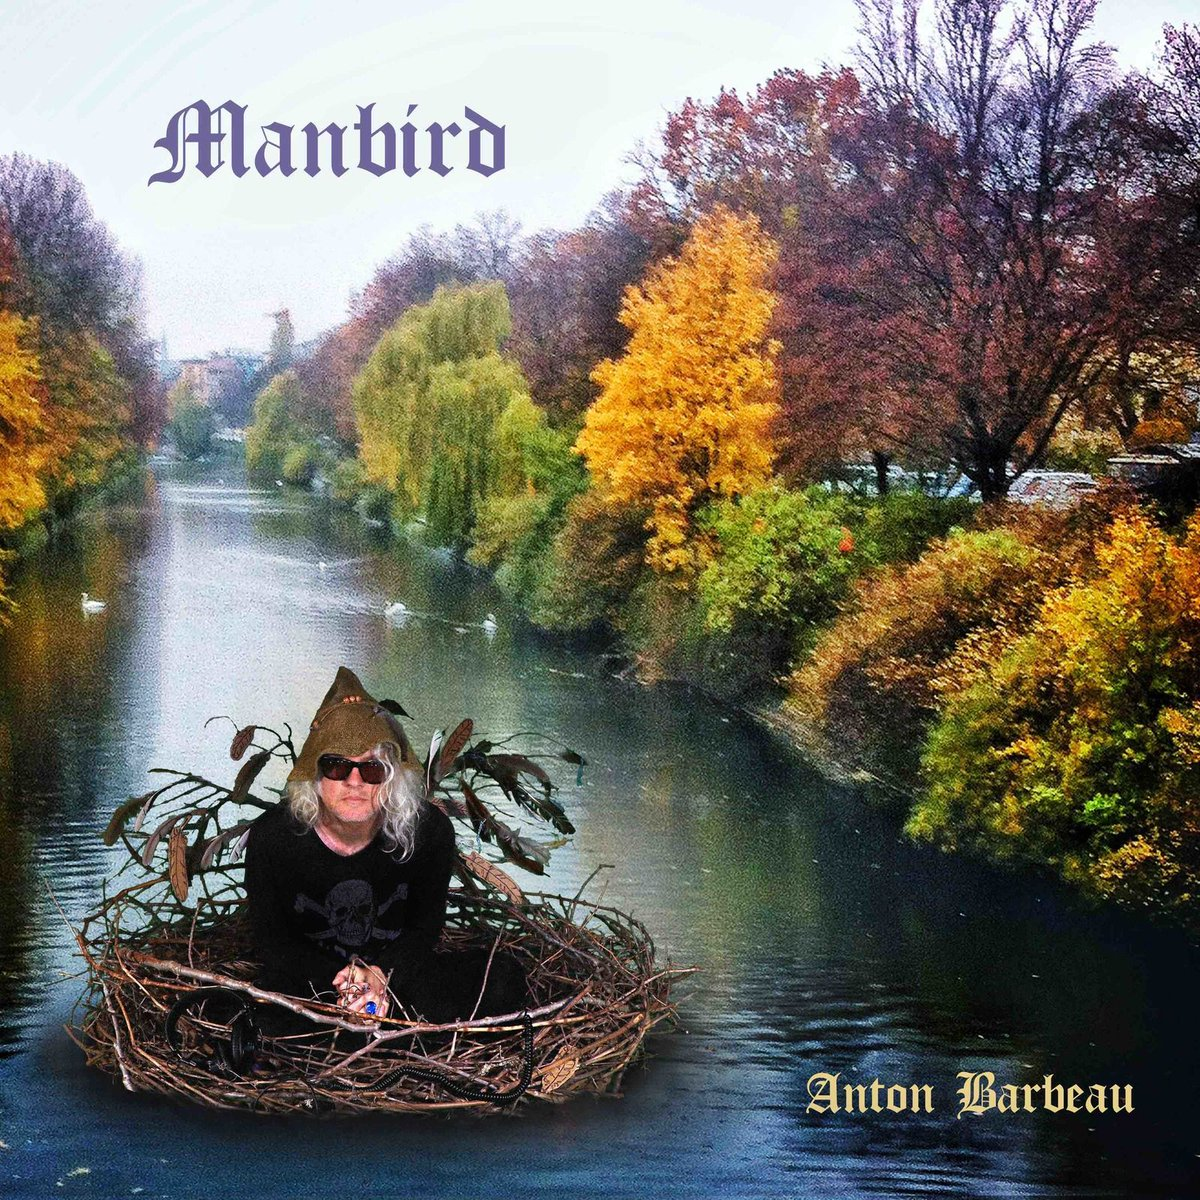 """Cheers to It's Psychedelic Baby Magazine @PsychedelicMag for the fine review of @antonbarbeau's album 'Manbird', which runs the sonic gamut from """"#psychedelia, #prog, #pop, #avantwyrdfolk, #electronic #krautrock"""" - """"an epic accomplishment"""" ~ https://t.co/48CWRohVcb @GareDuNordUK https://t.co/SuAv1LWYiL"""